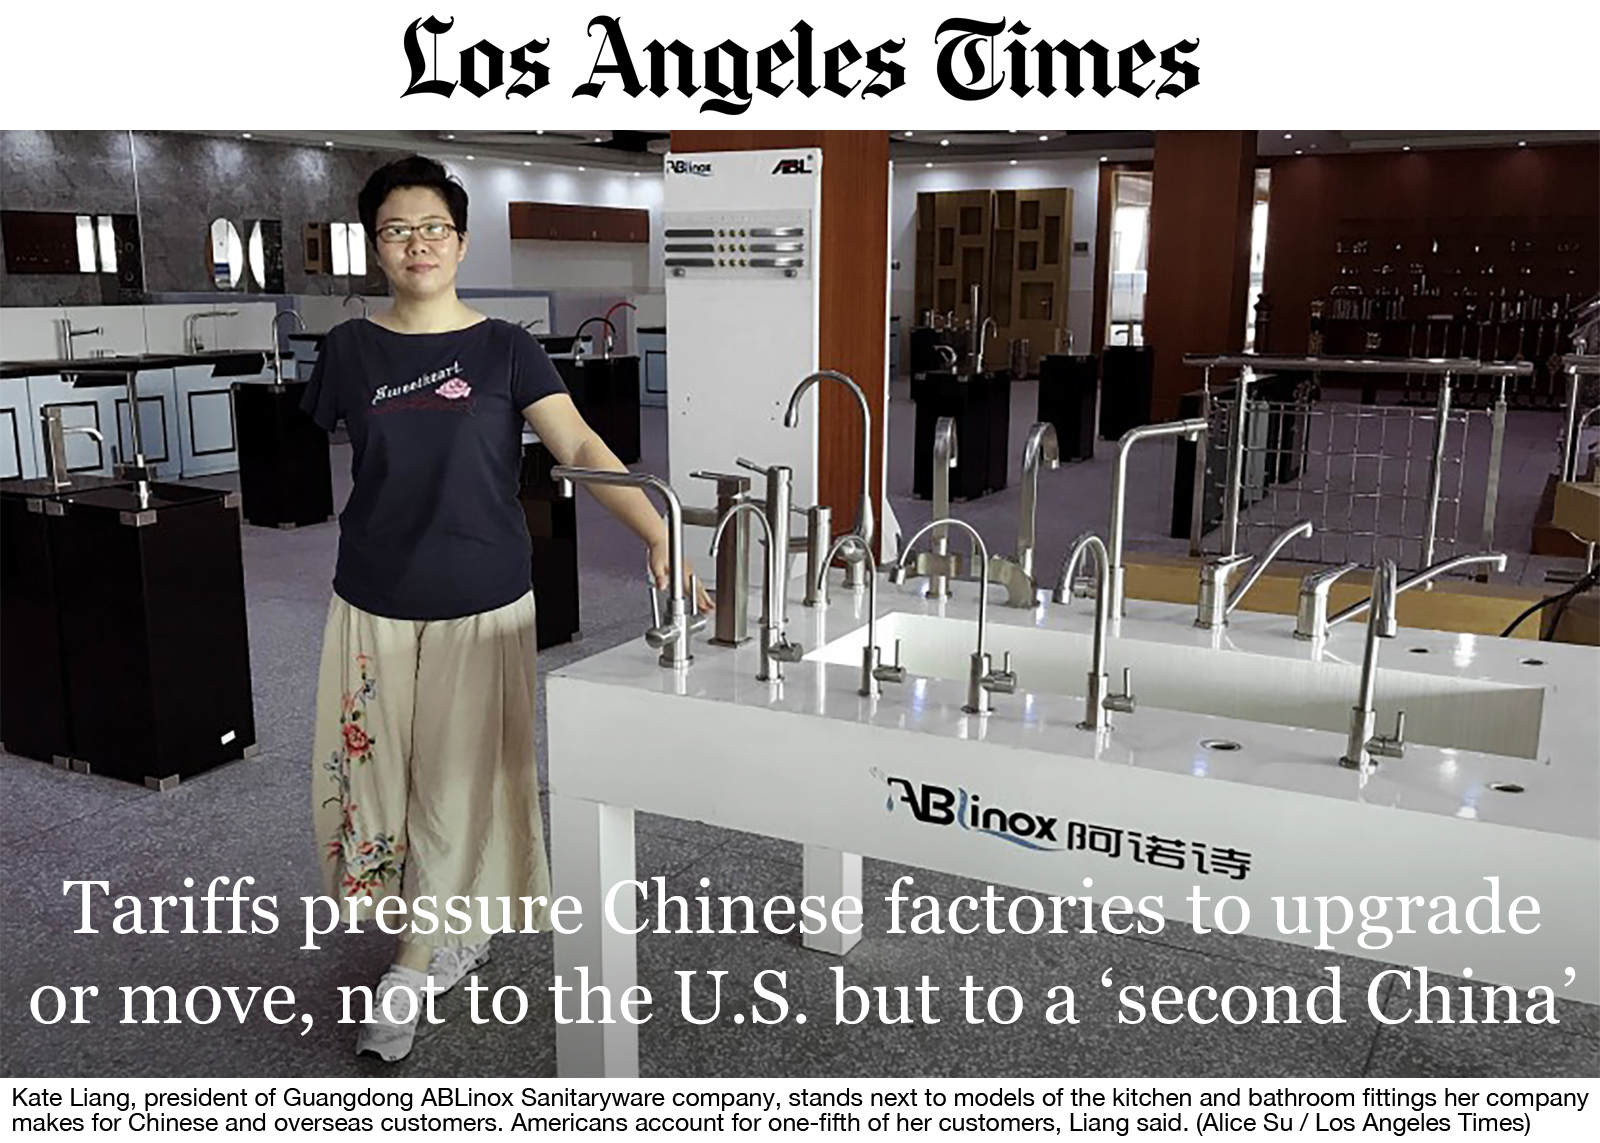 Tariffs Pressure Chinese Factories to Upgrade or Move Not to the US but to a Second China